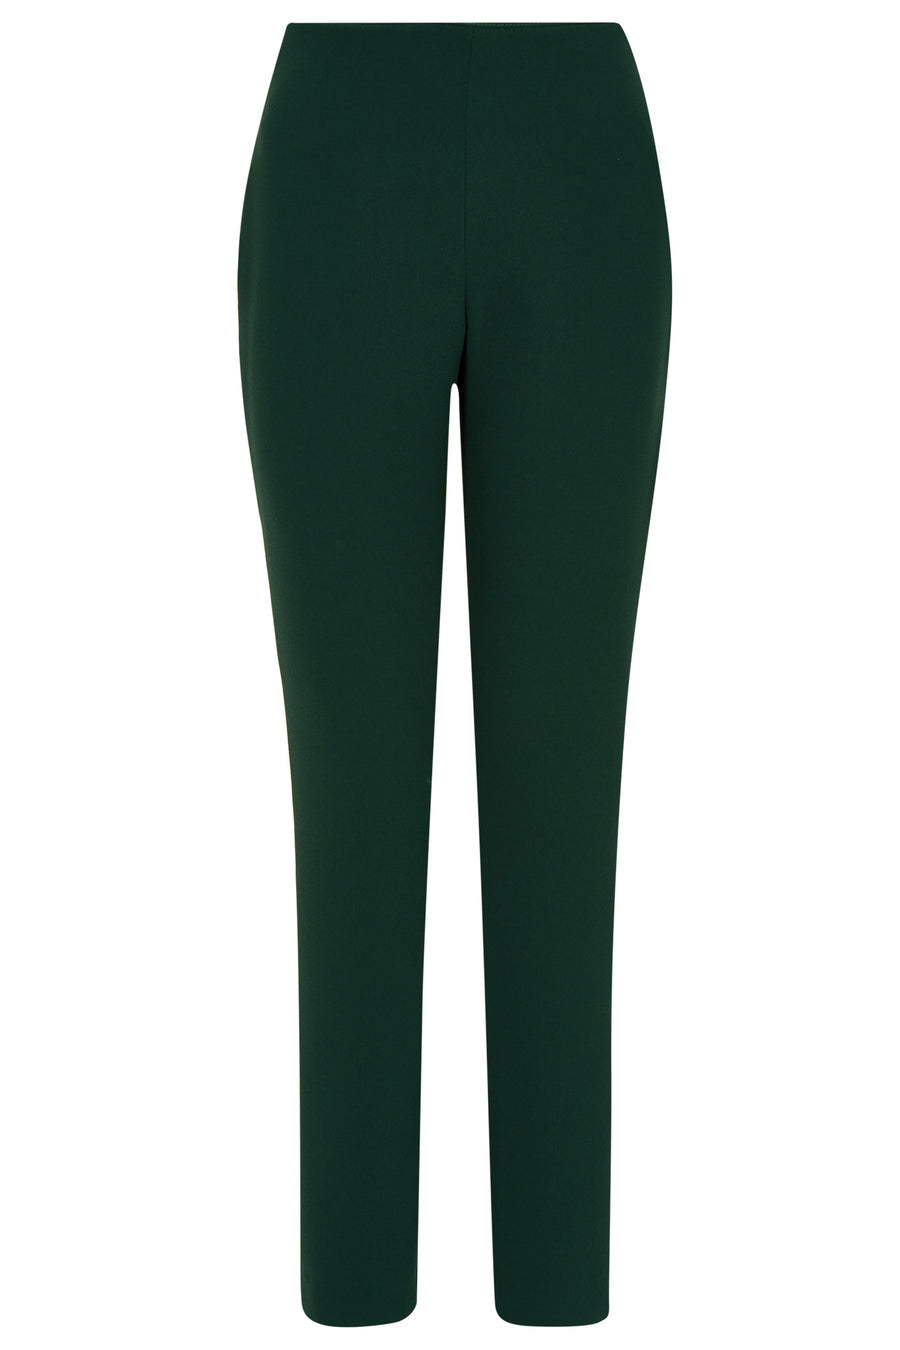 Brunswick Green Crepe Trousers